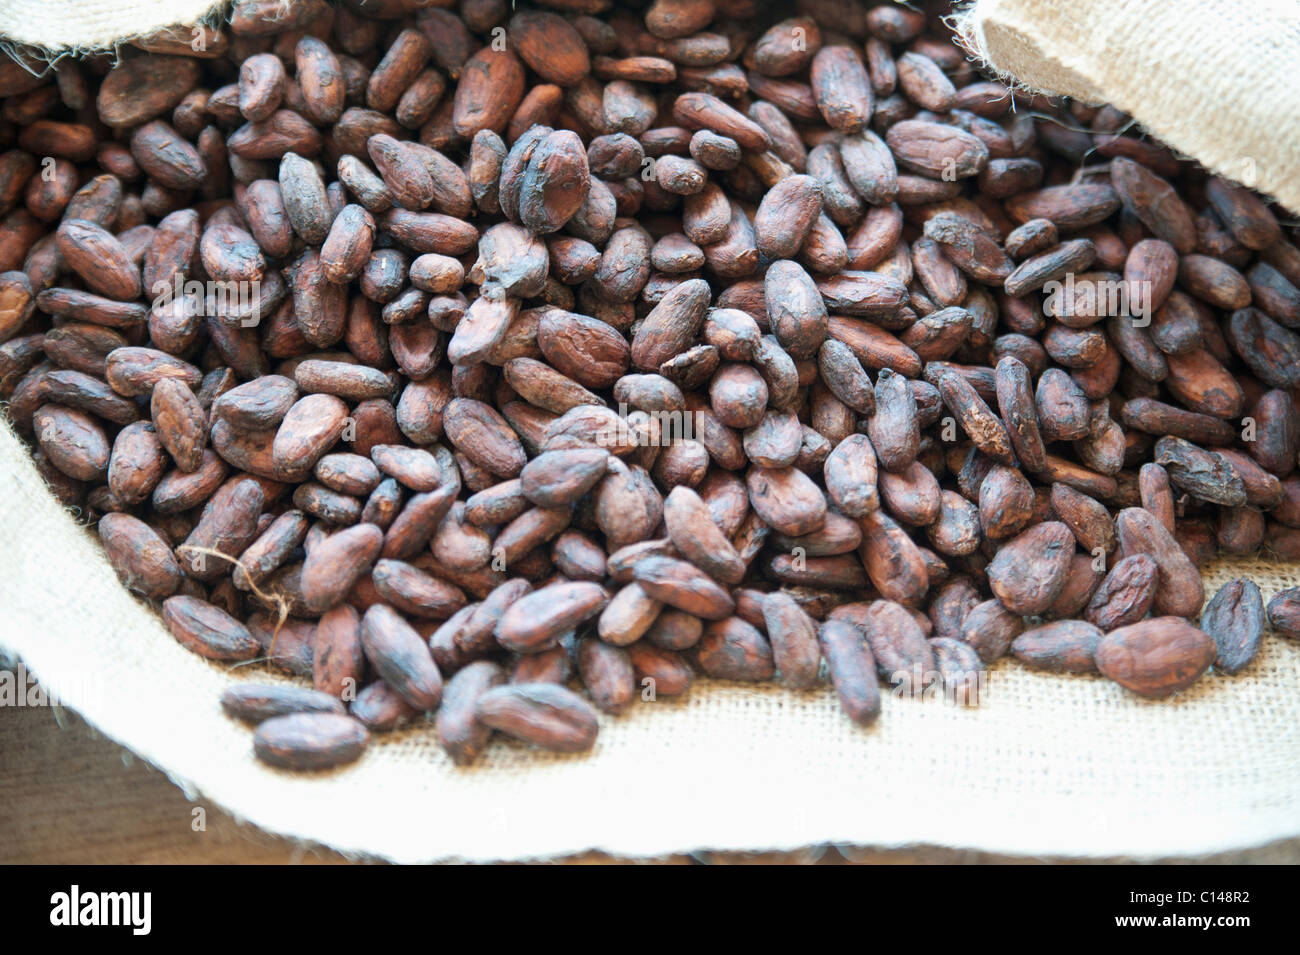 Cocoa seeds, Brazil, South America. Stock Photo